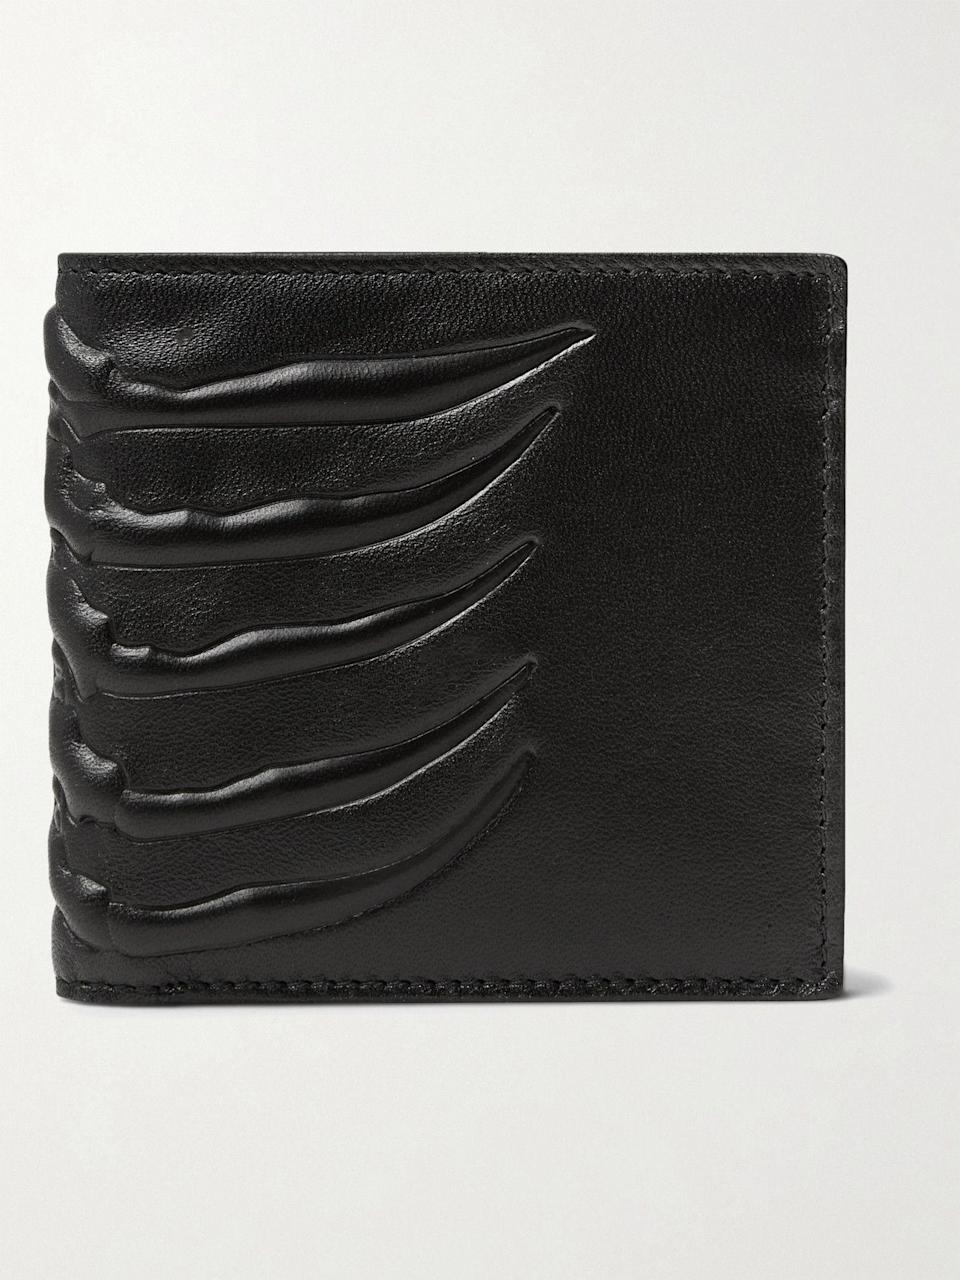 """<p><strong>Alexander McQueen</strong></p><p>mrporter.com</p><p><strong>$240.00</strong></p><p><a href=""""https://go.redirectingat.com?id=74968X1596630&url=https%3A%2F%2Fwww.mrporter.com%2Fen-us%2Fmens%2Fproduct%2Falexander-mcqueen%2Faccessories%2Fbillfold-wallets%2Fembossed-leather-billfold-wallet%2F666467151925278&sref=https%3A%2F%2Fwww.esquire.com%2Fstyle%2Fmens-accessories%2Fg35924710%2Fmens-luxury-wallets%2F"""" rel=""""nofollow noopener"""" target=""""_blank"""" data-ylk=""""slk:Shop Now"""" class=""""link rapid-noclick-resp"""">Shop Now</a></p><p>Does your current wallet have an embossed ribcage on it? No? <em>Why not??</em></p>"""